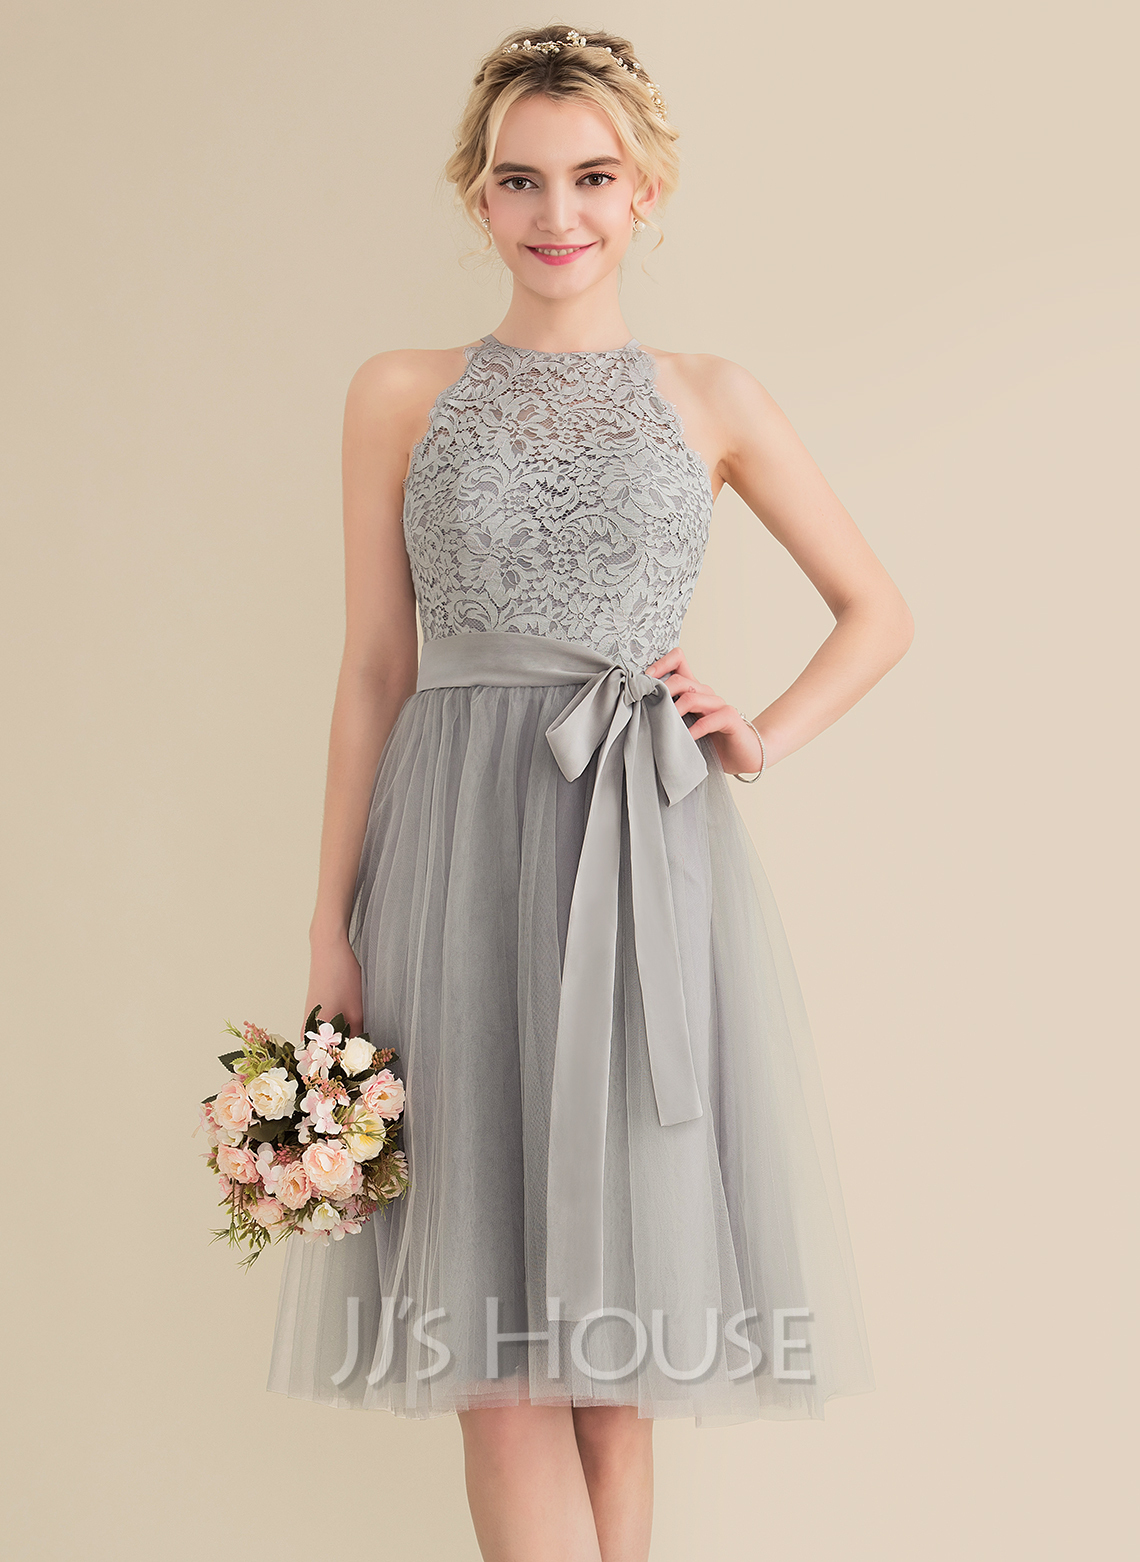 Scoop Neck Knee-Length Tulle Lace Bridesmaid Dress